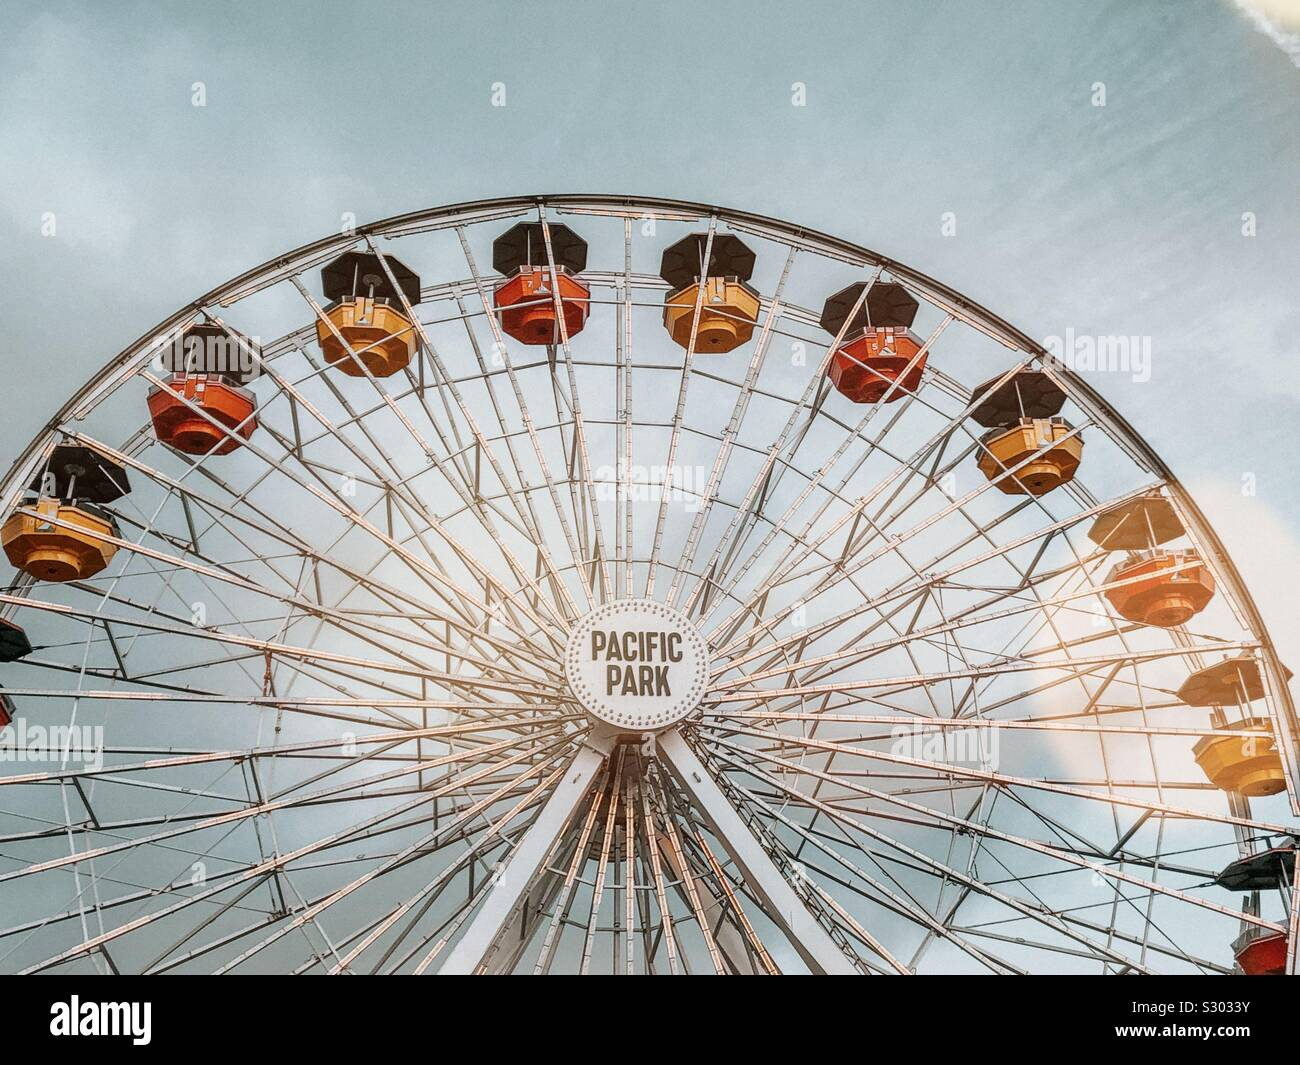 Pacific park Ferris wheel Stock Photo